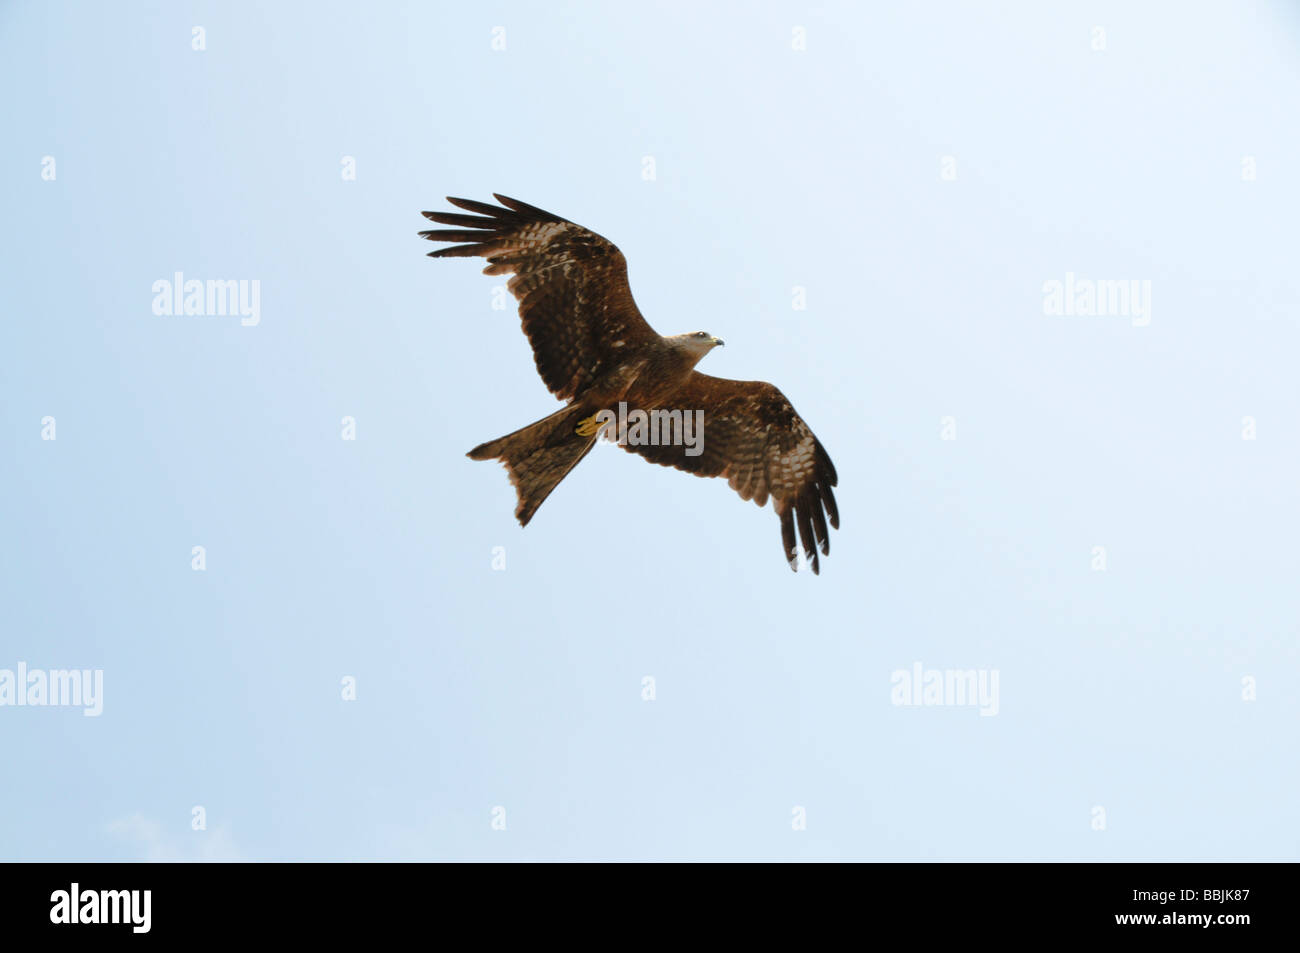 Crested Serpent Eagle (Spilornis cheela or Kanmuri-washi) flying in Ranthambhore tiger reserve in India. - Stock Image